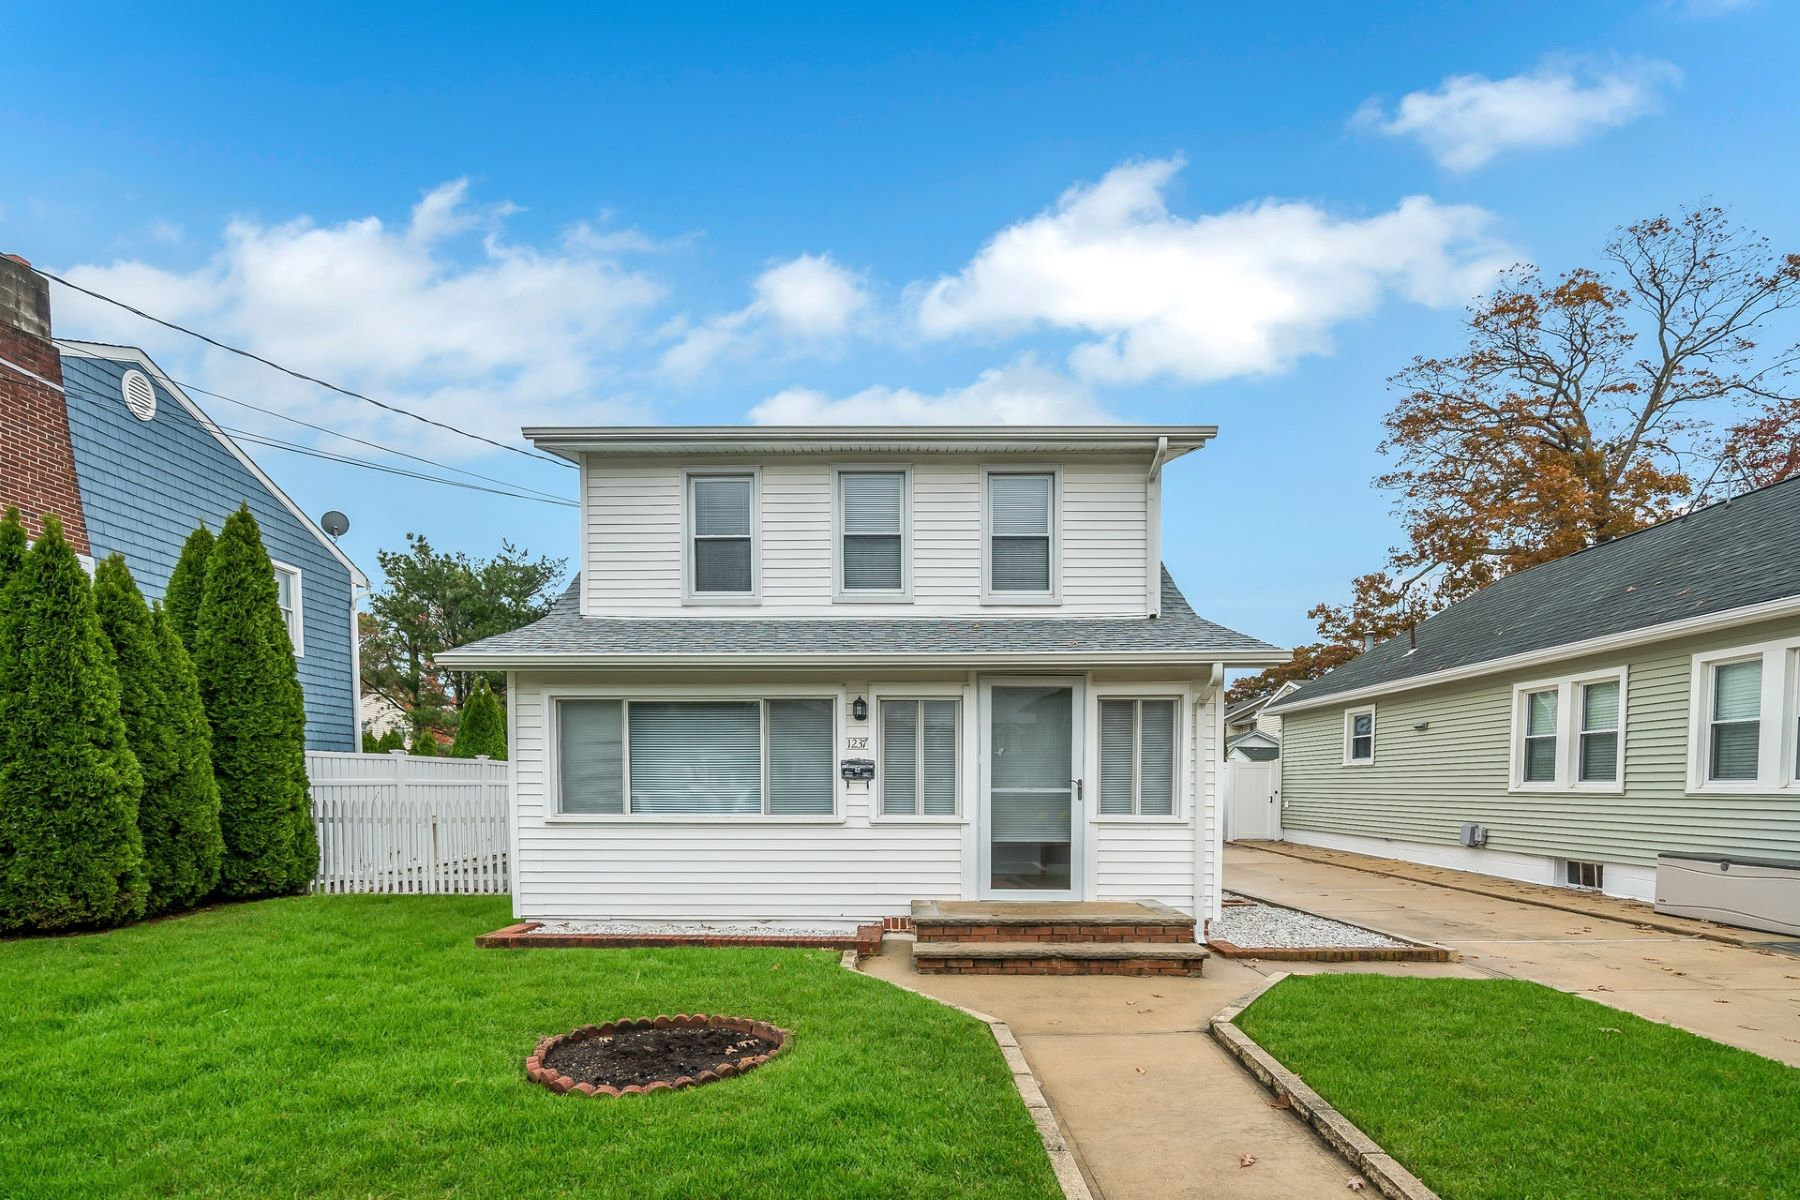 Single Family Home for Sale at Immaculate..Well Maintained 2 bed 2 bath home 1237 Briarwood Rd, Belmar, New Jersey 07719 United States